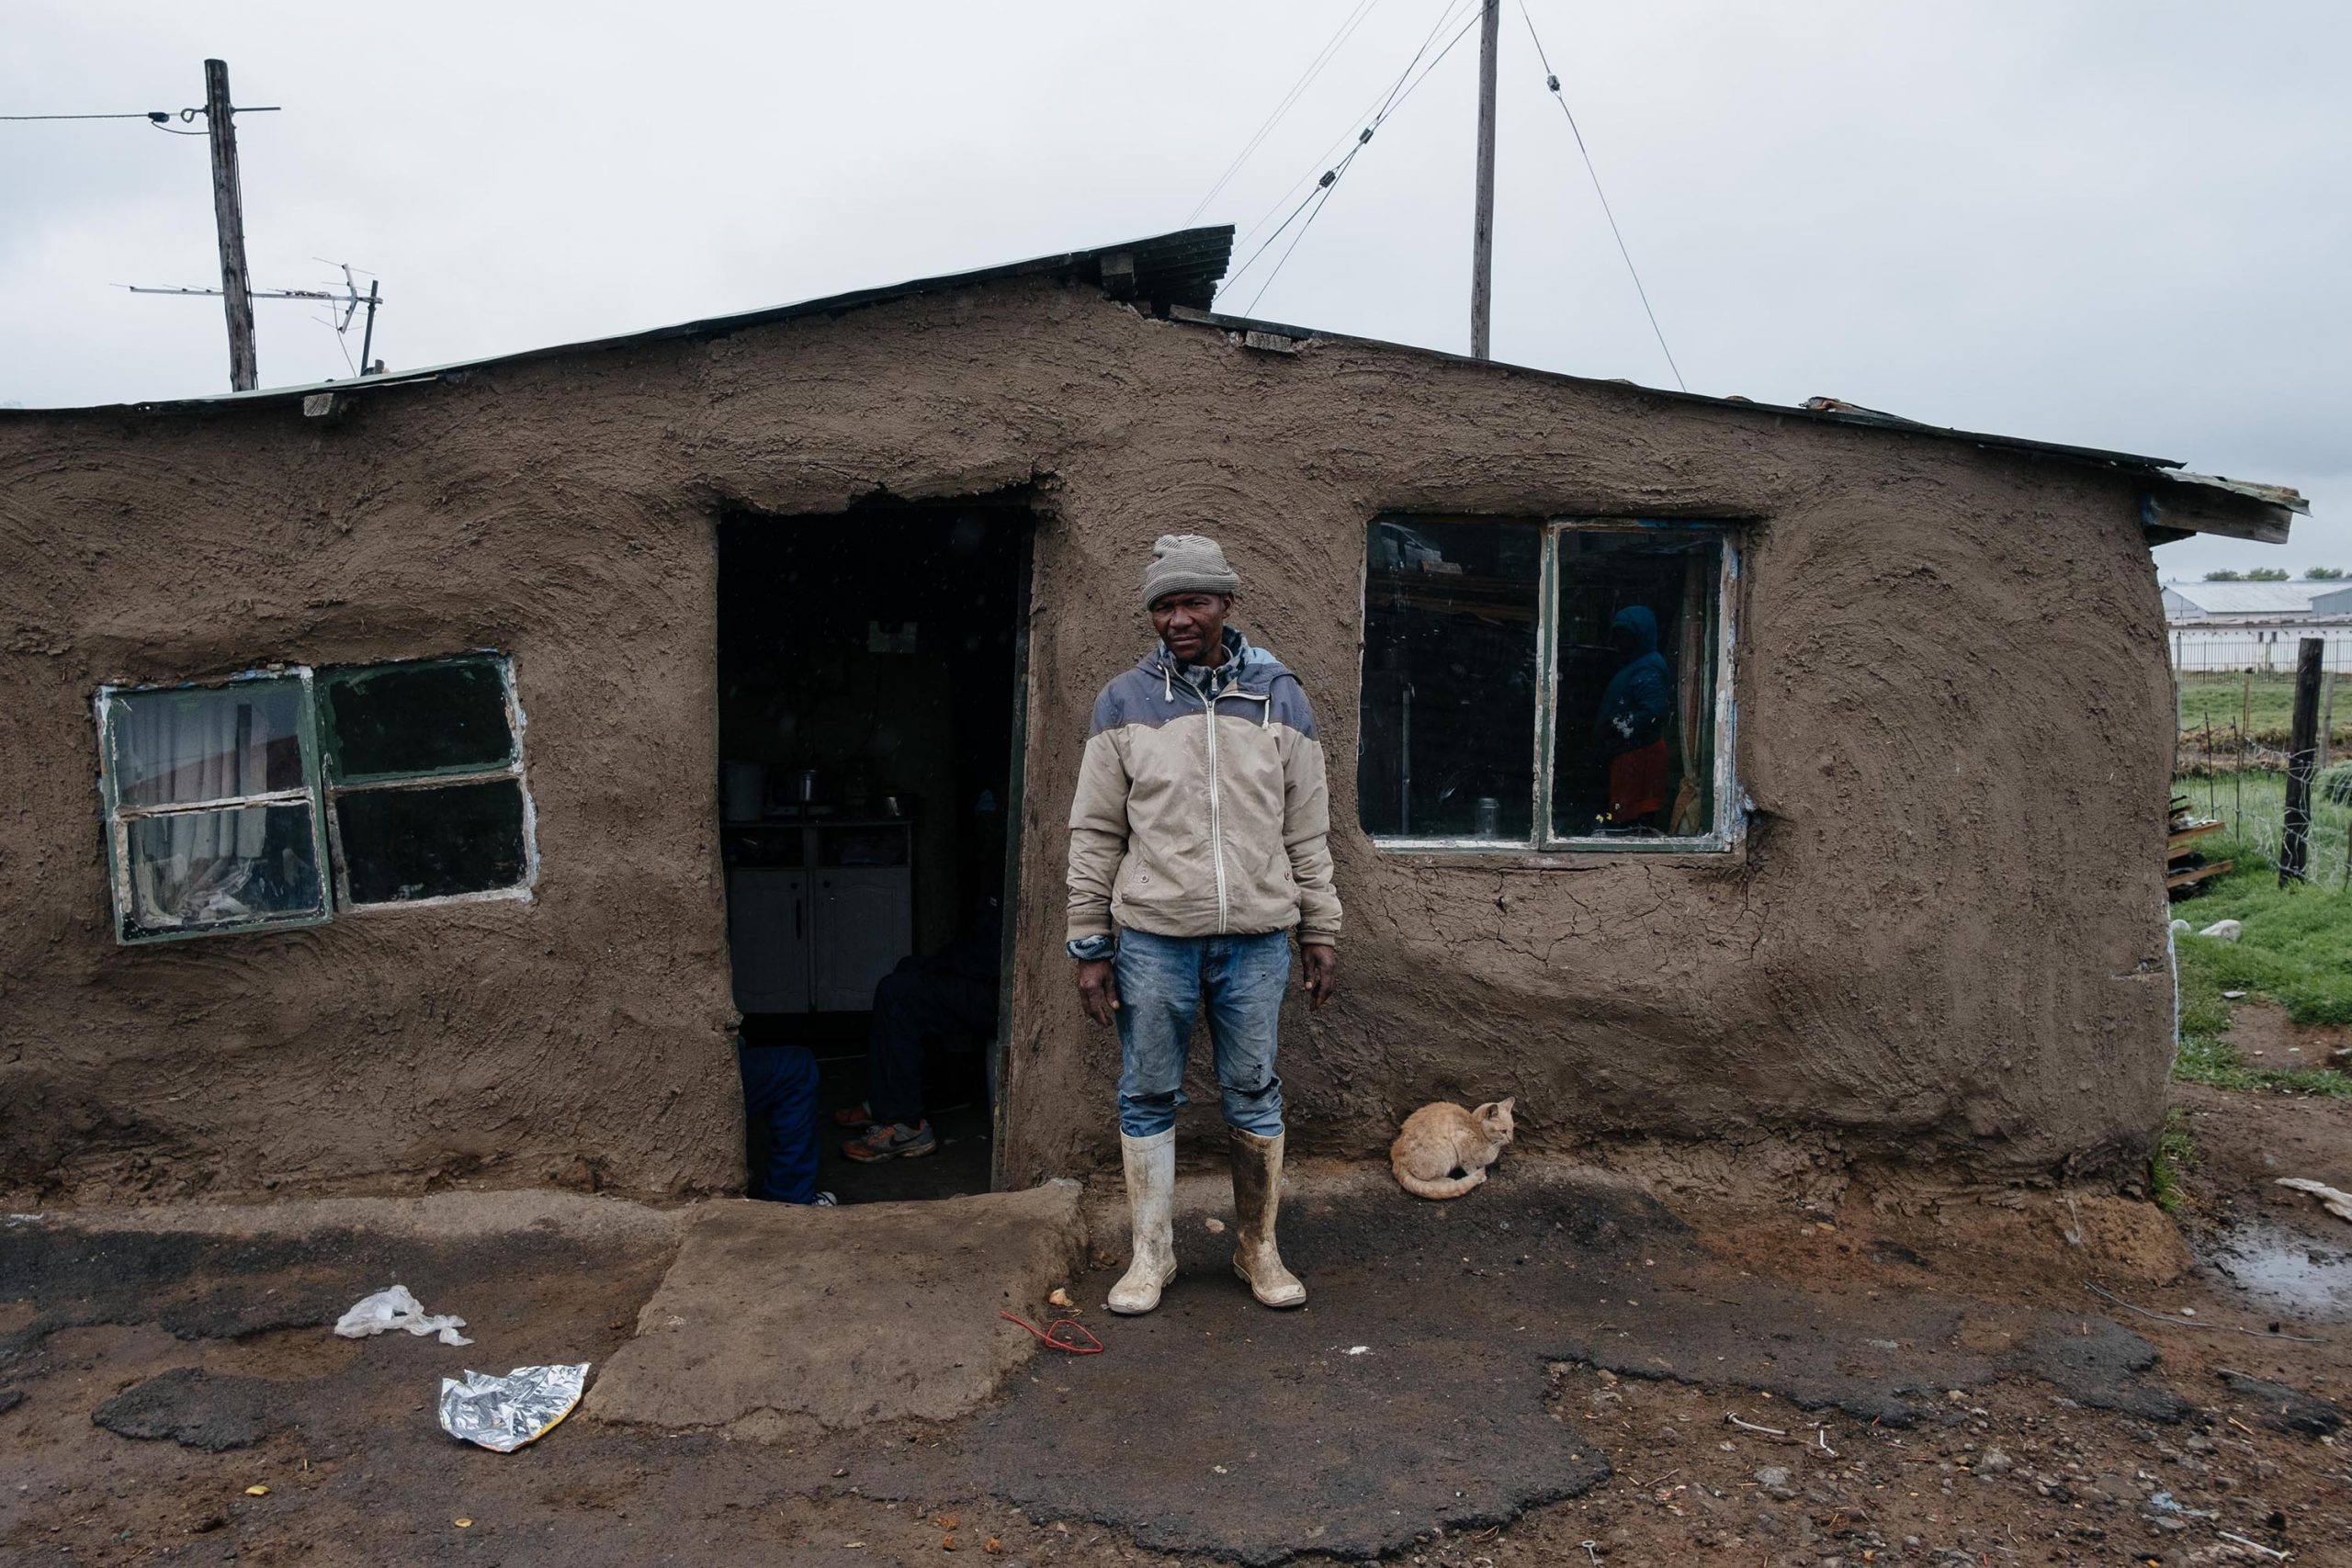 10 December 2019: Mnikelo Tywhili, 46, outside his house in Old Location, Kowa. He has built his house using the traditional method of mud over a timber frame.